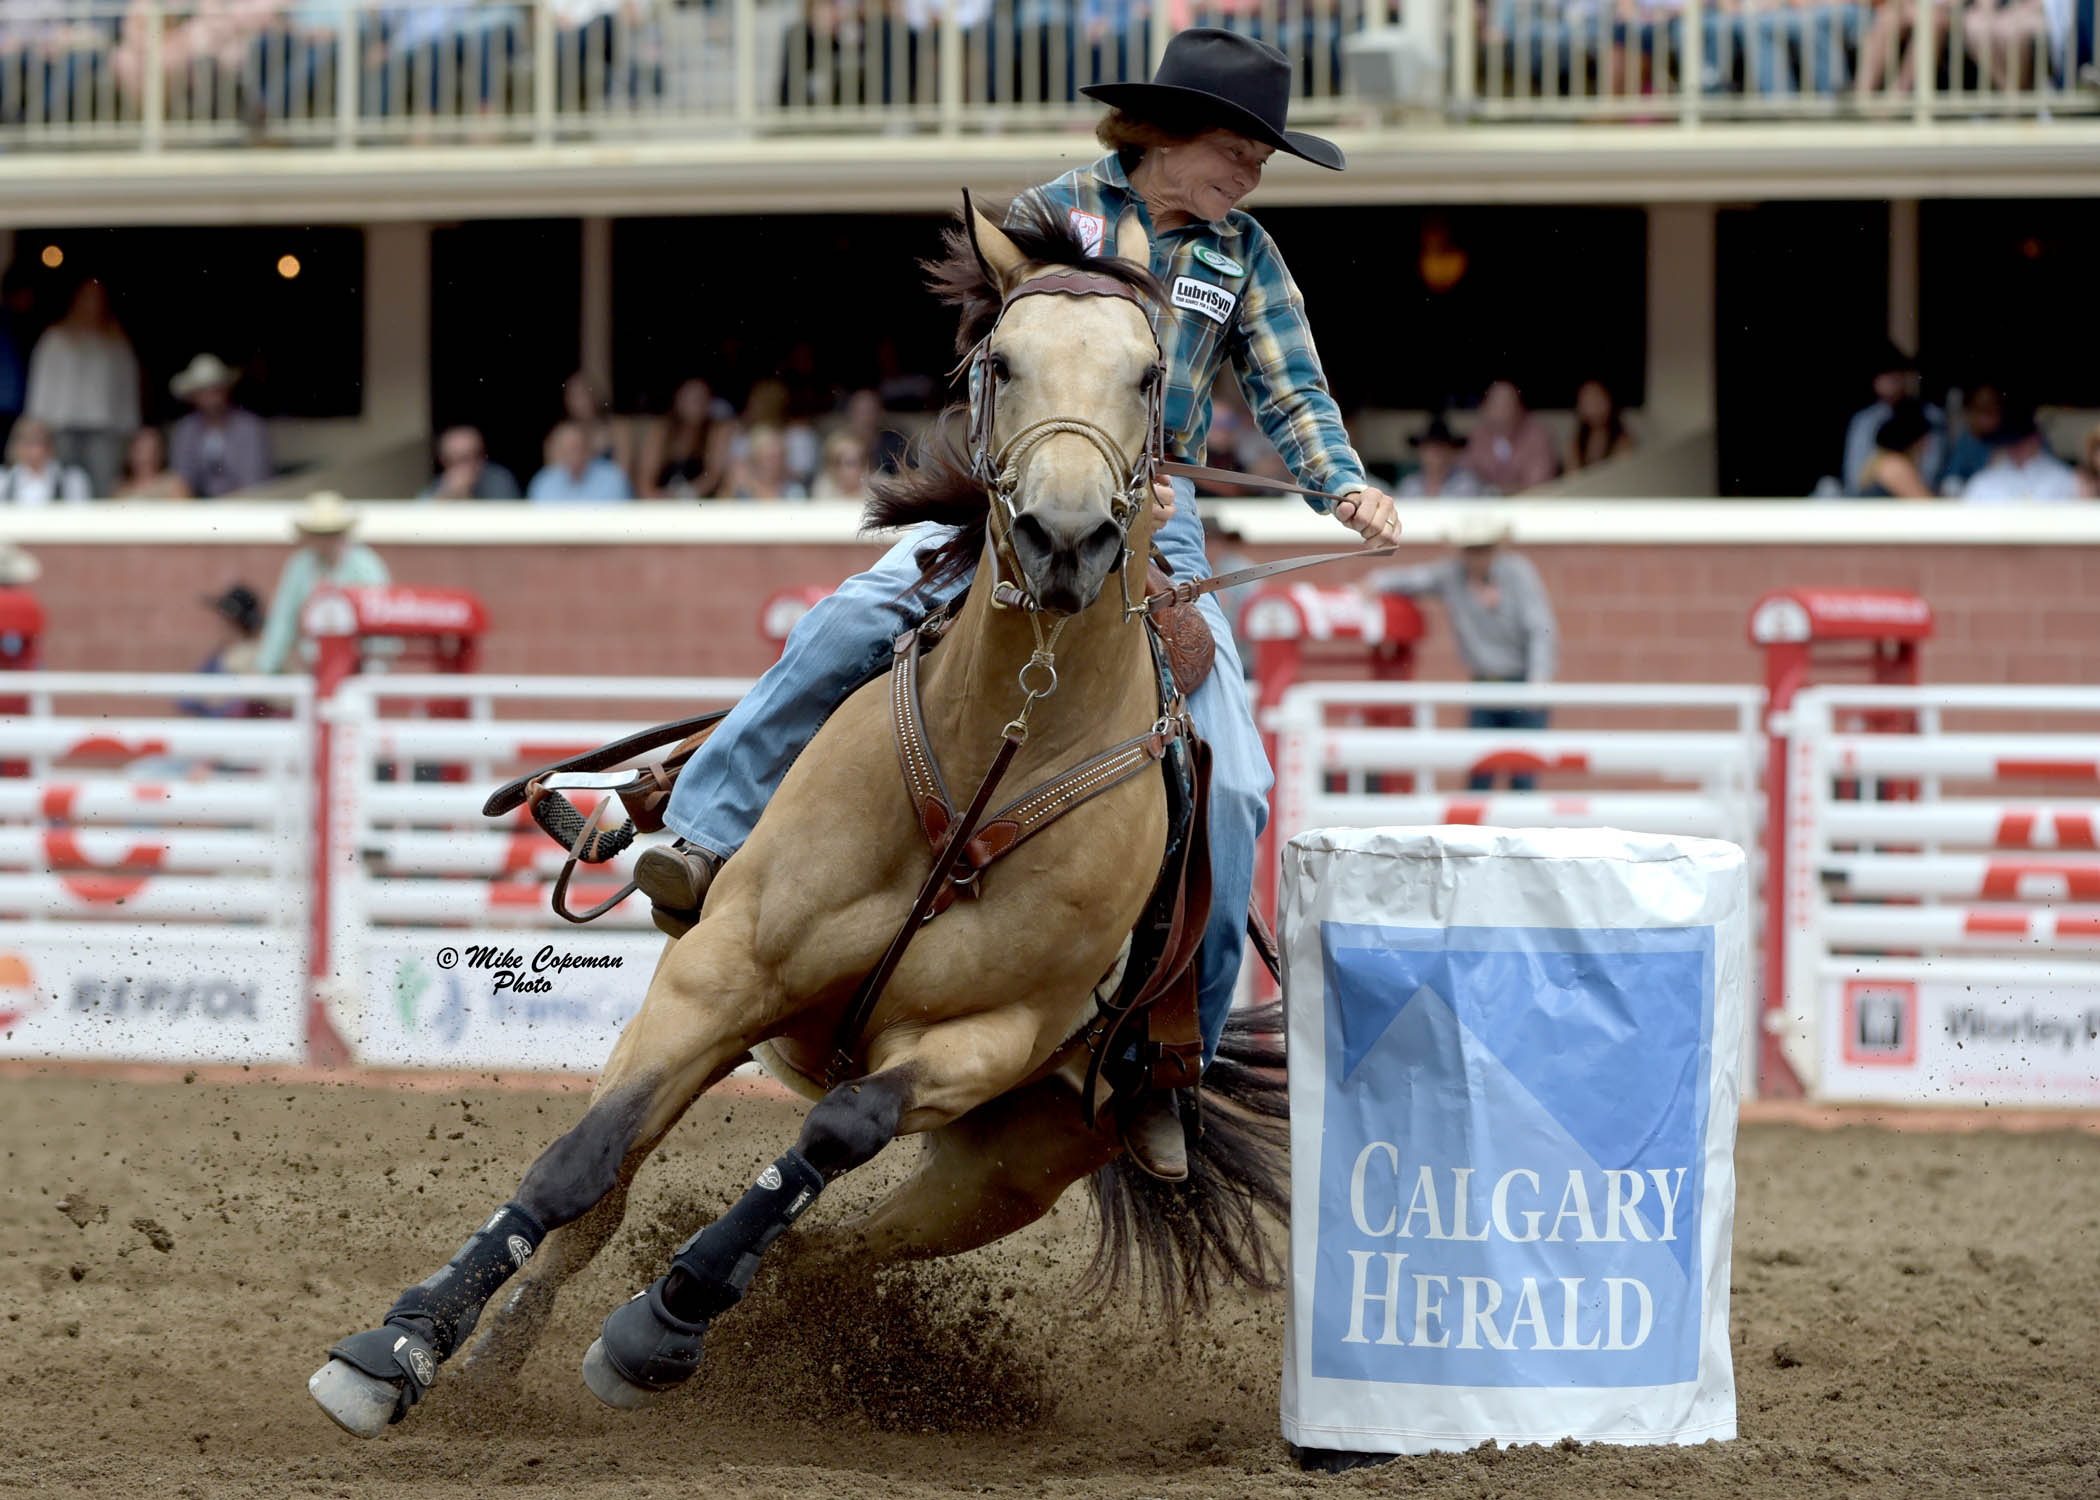 67 Year Old Barrel Racer Rides To Victory For A Second